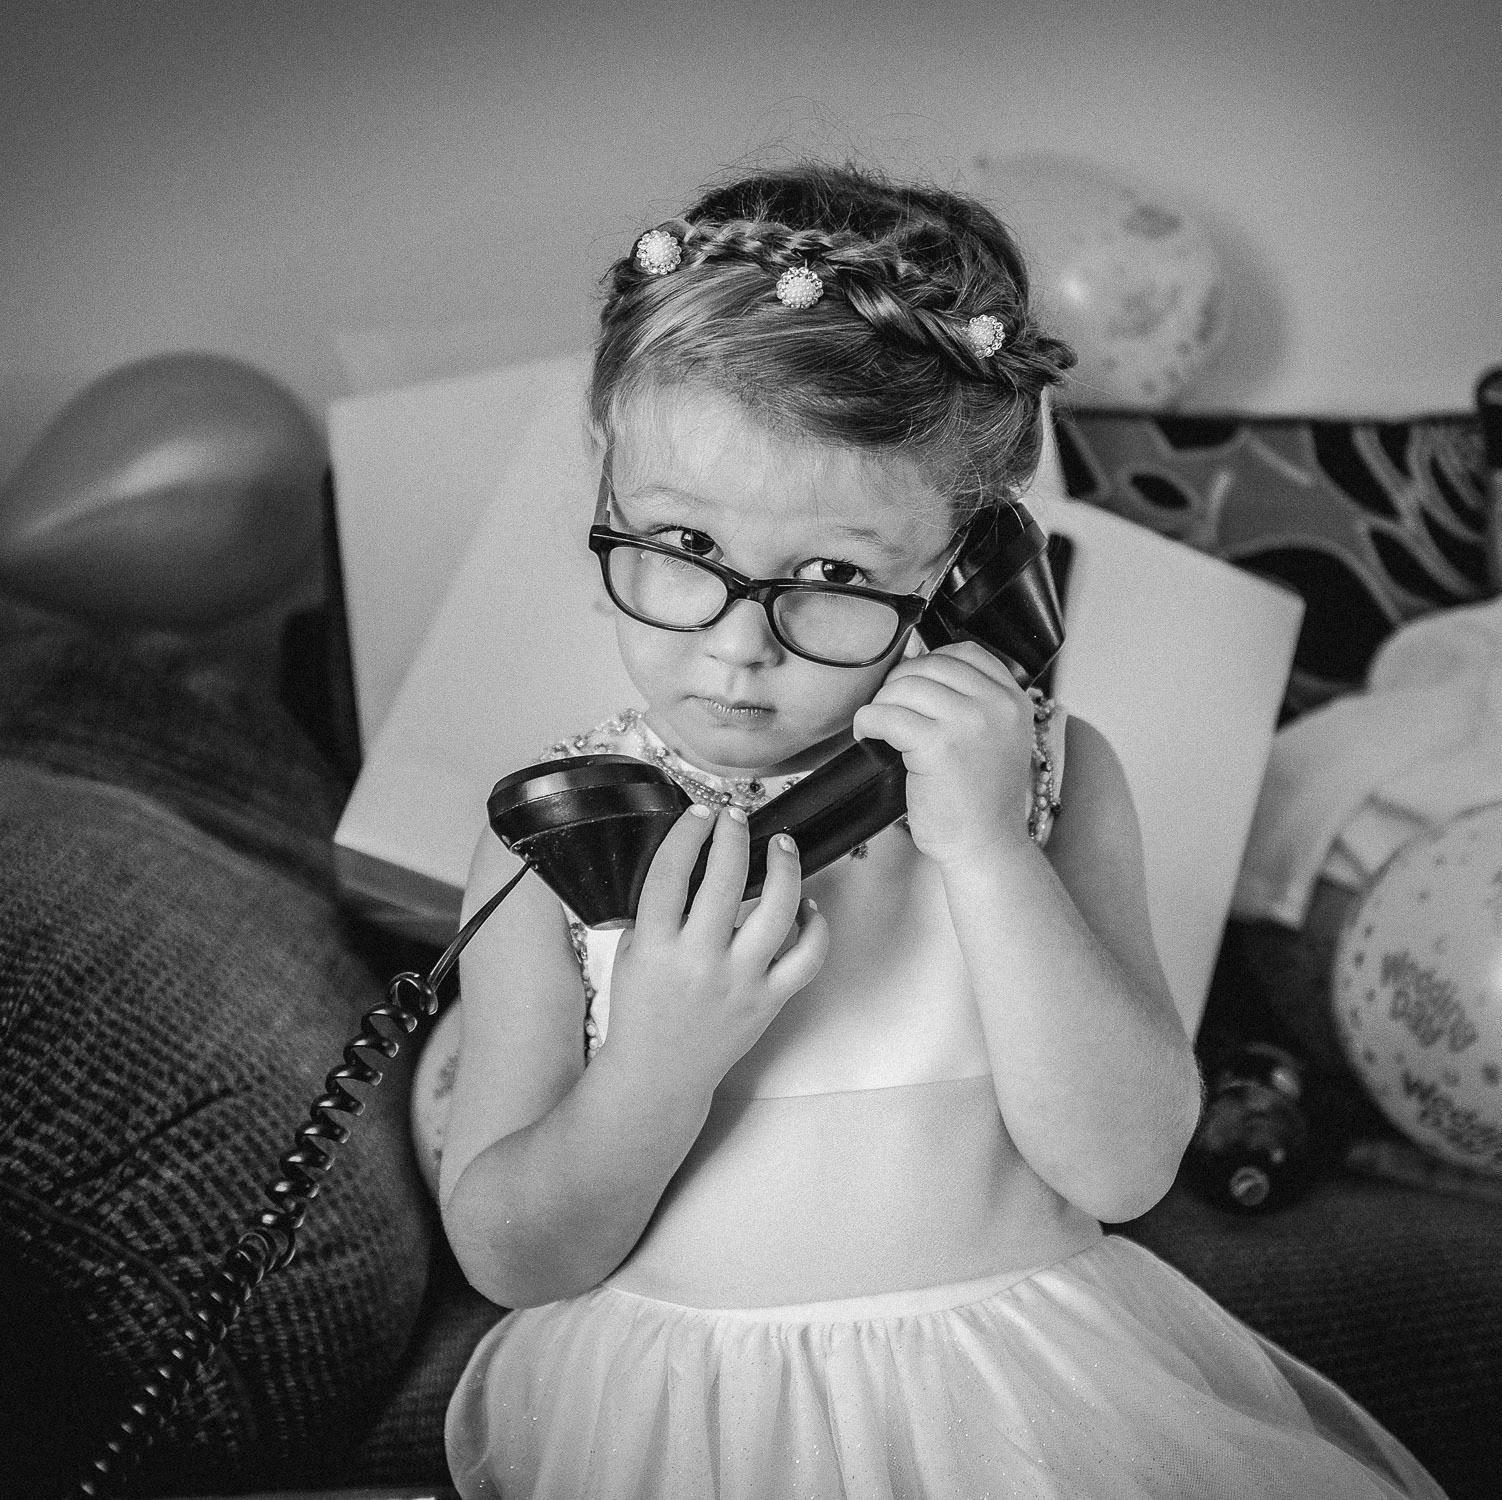 Little flower girl on old phone